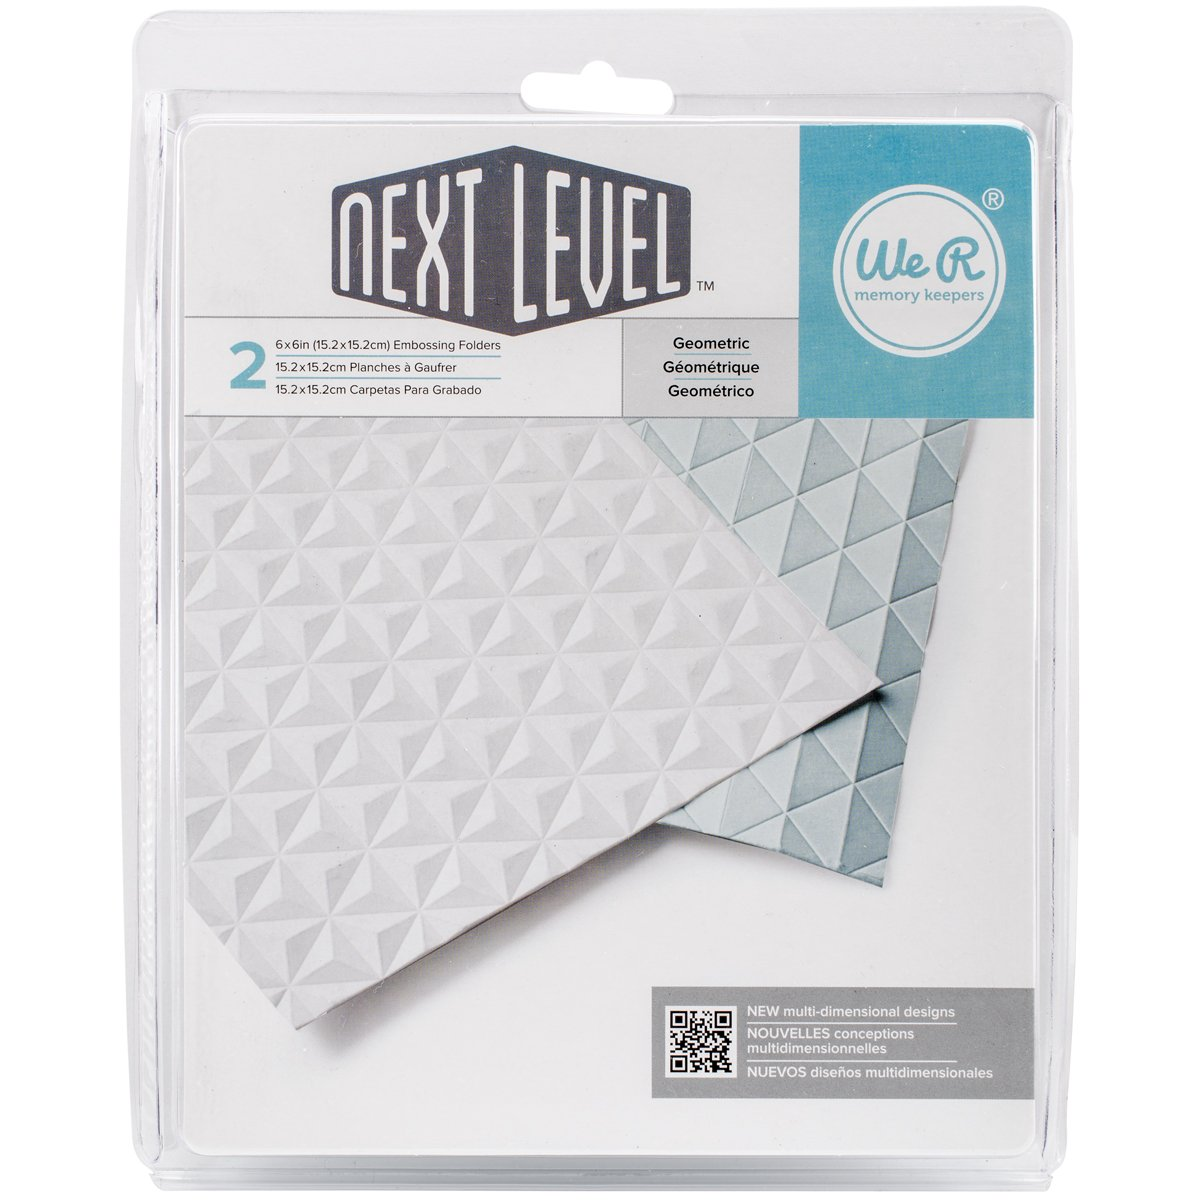 American Crafts Next Level Geometric Embossing Folder 2-Pack by We R Memory Keepers | Includes two 6 x 6-inch embossing folders in different geometric patterns